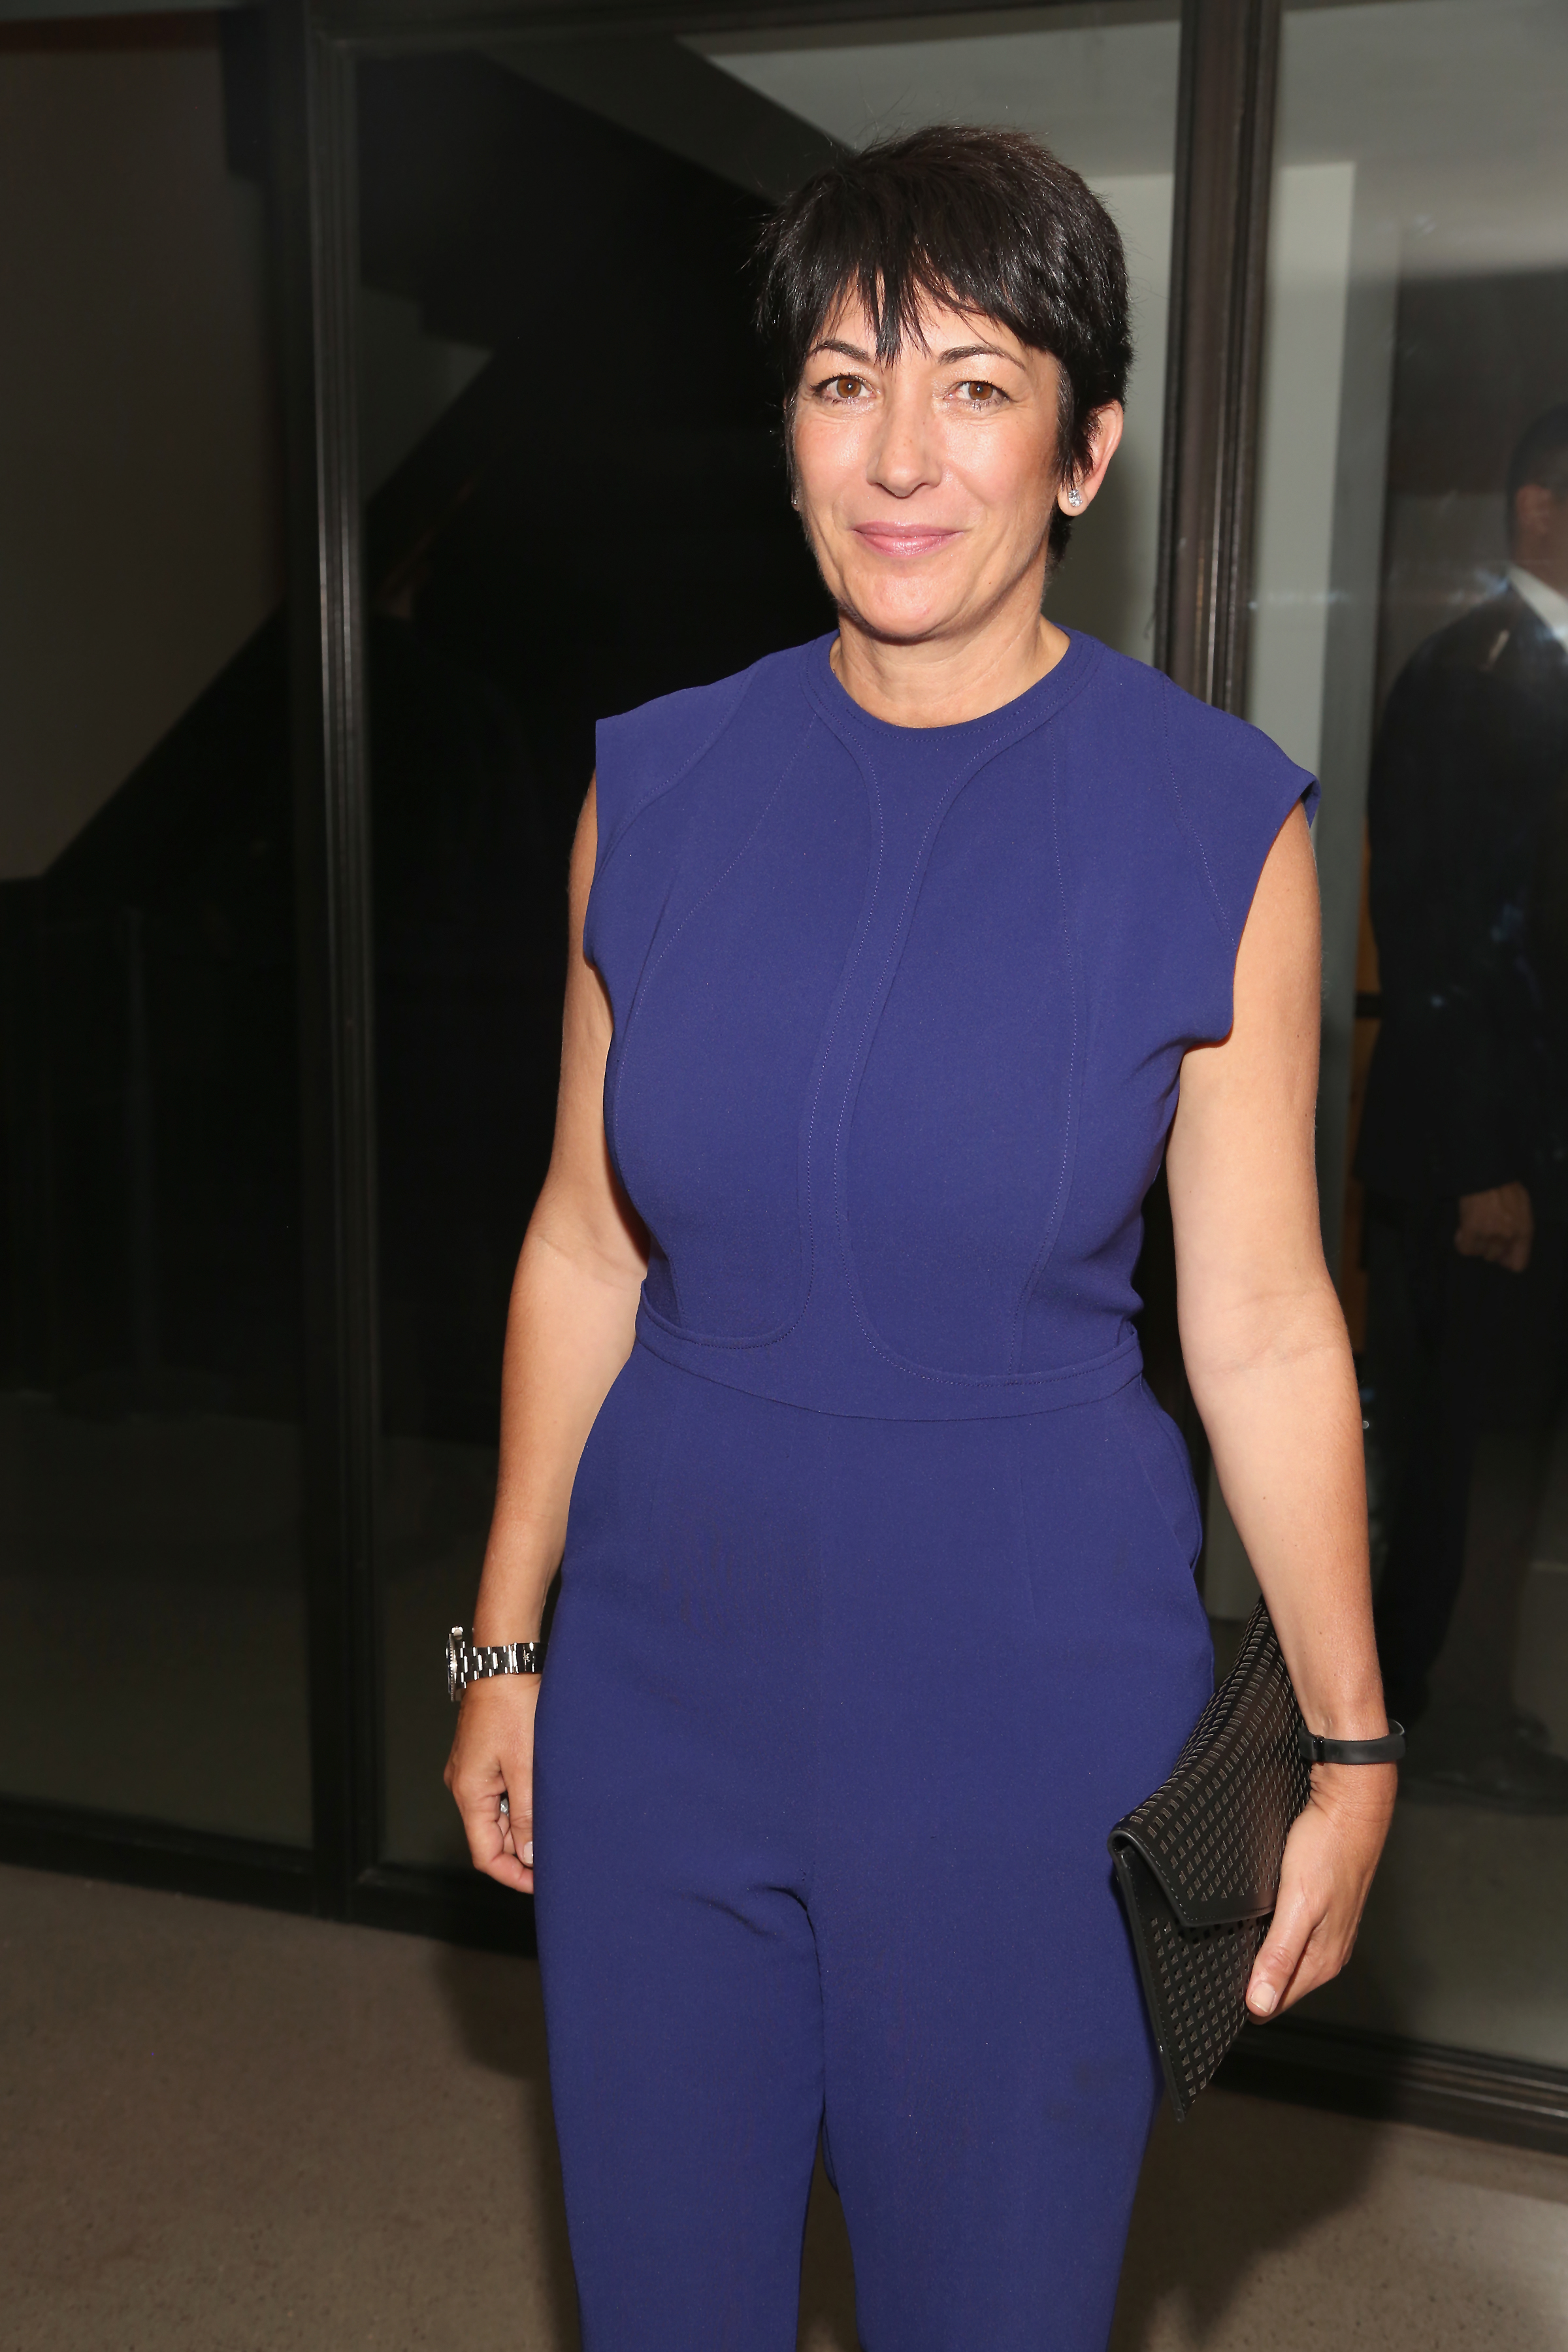 Ghislaine Maxwell petitions judge over jail restrictions, citing 'onerous conditions' related to Jeffrey Epstein's suicide